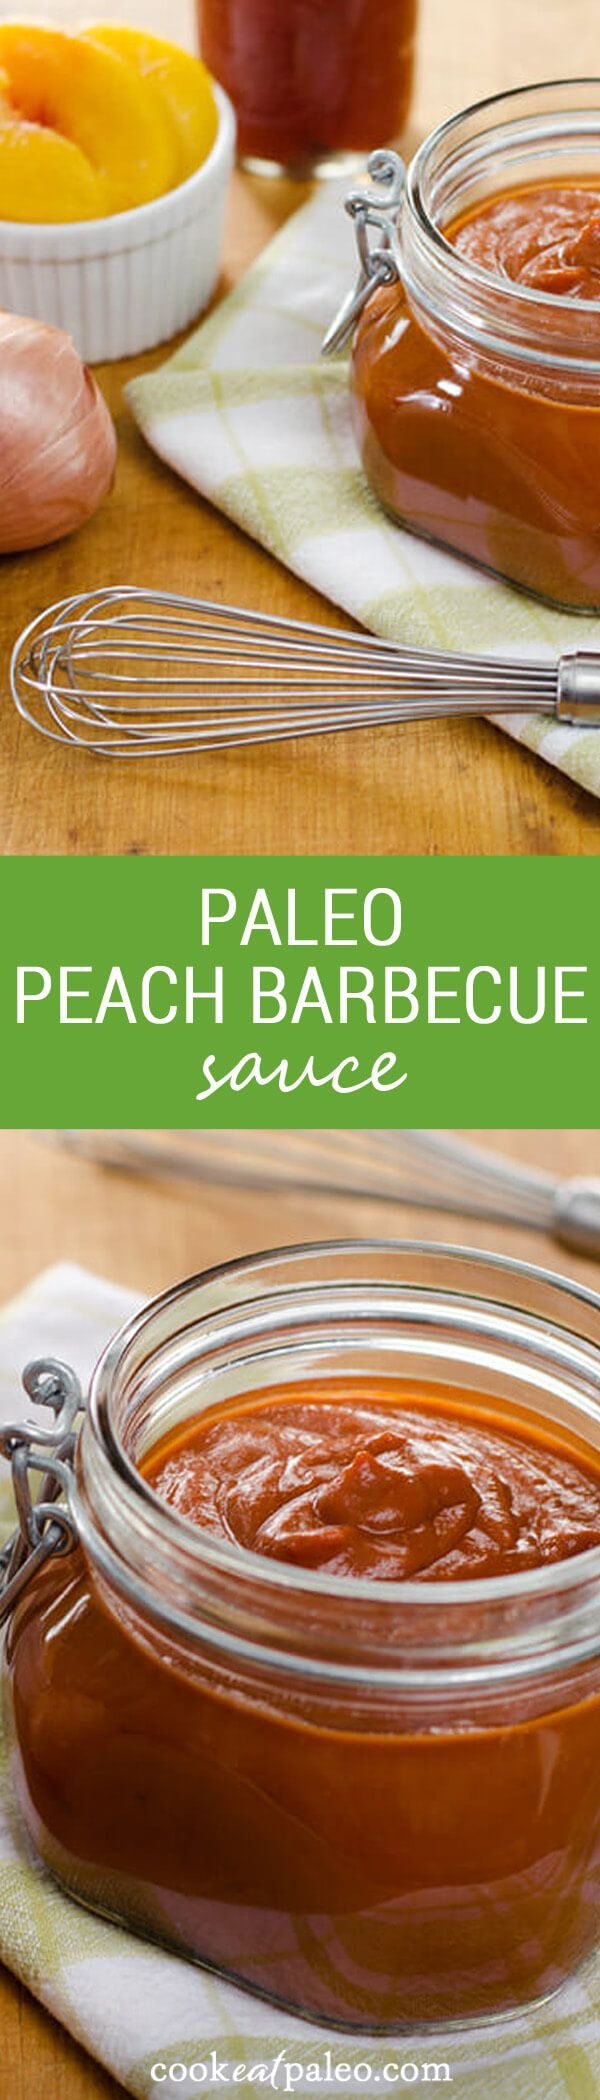 This quick and easy paleo peach barbecue sauce recipe has no ketchup, no added sugar, and you can make it in about 10 minutes! And it's gluten-free. ~ http://cookeatpaleo.com